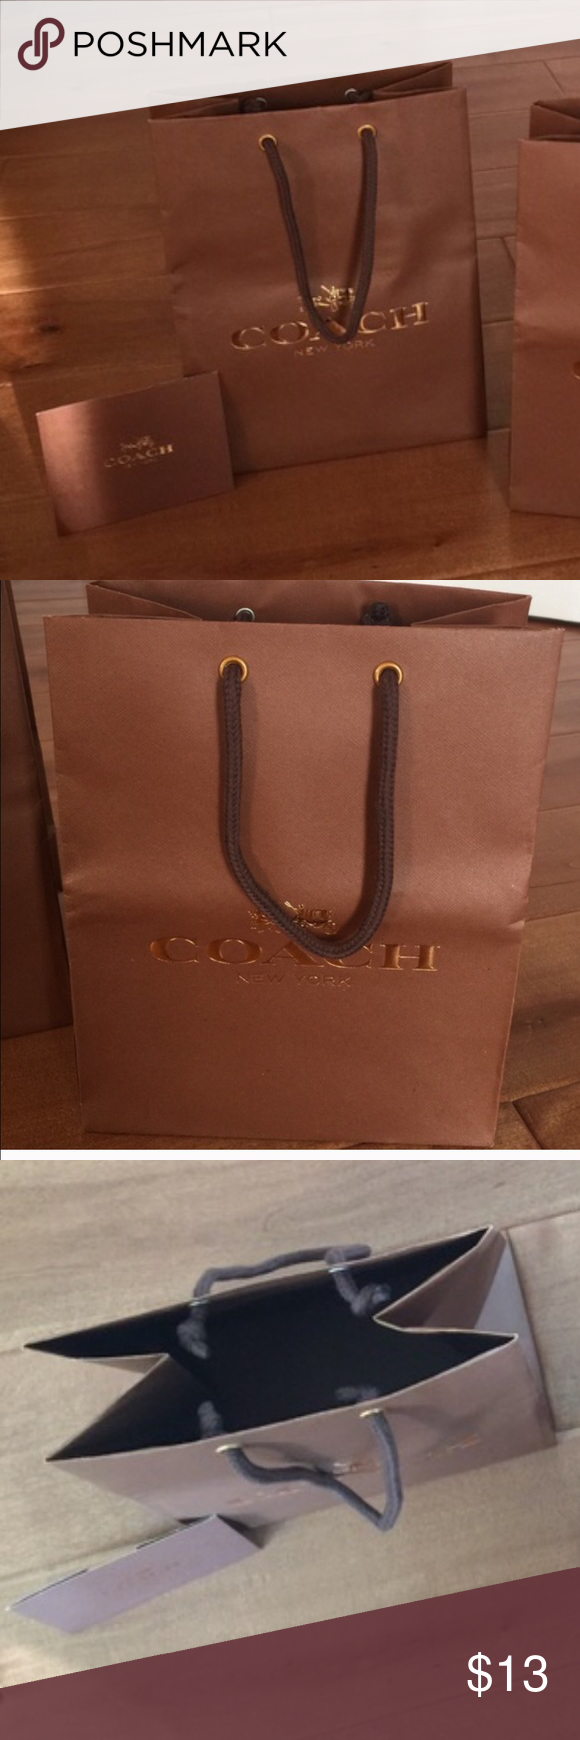 Authentic Coach shopping bag with envelope Bundle includes one shipping bag shown and an envelope. Coach Bags